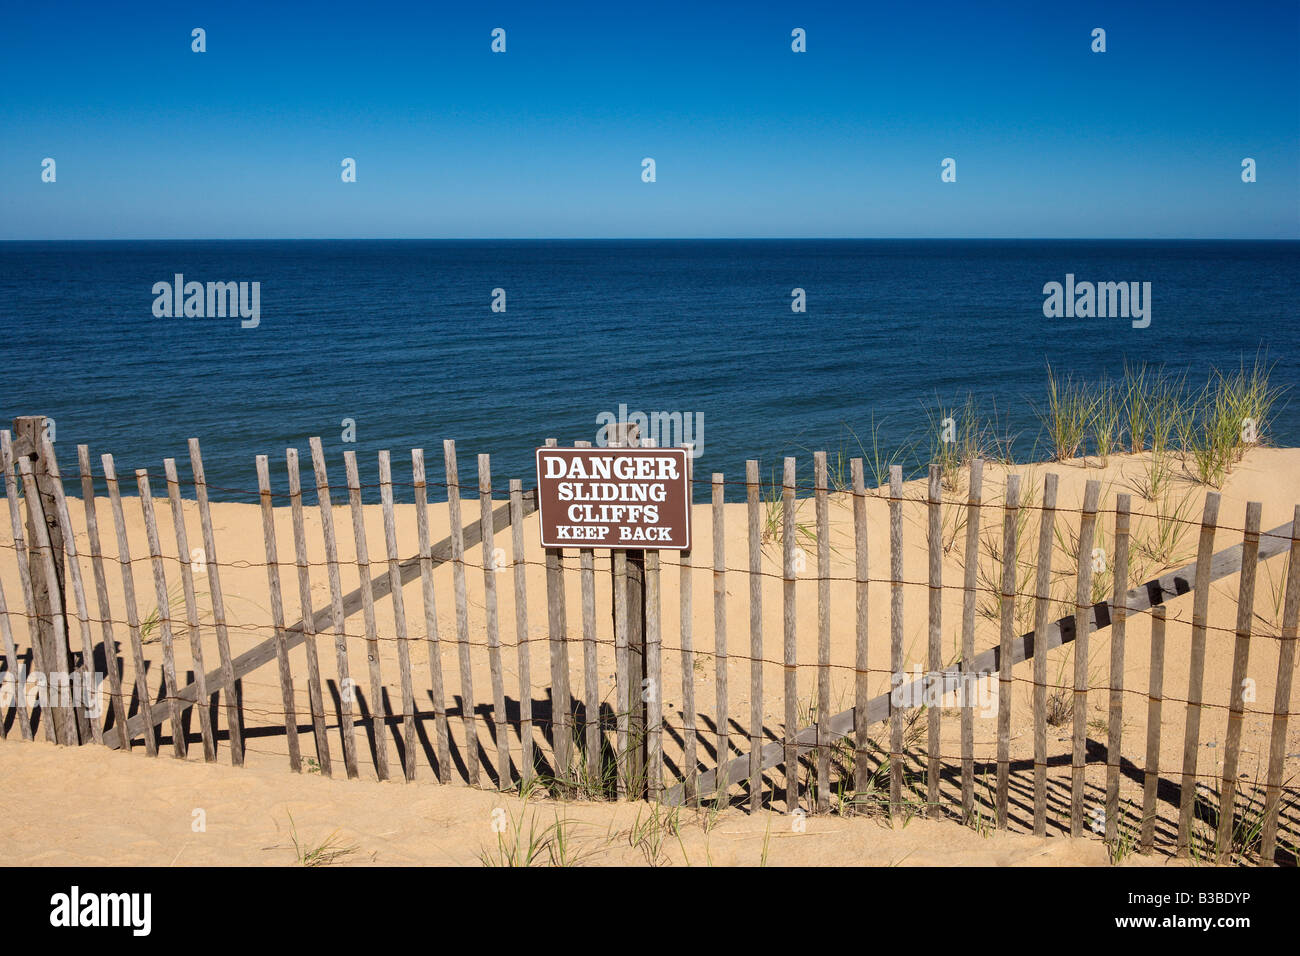 Danger Sliding Cliffs Cape Cod Massachusetts - Stock Image